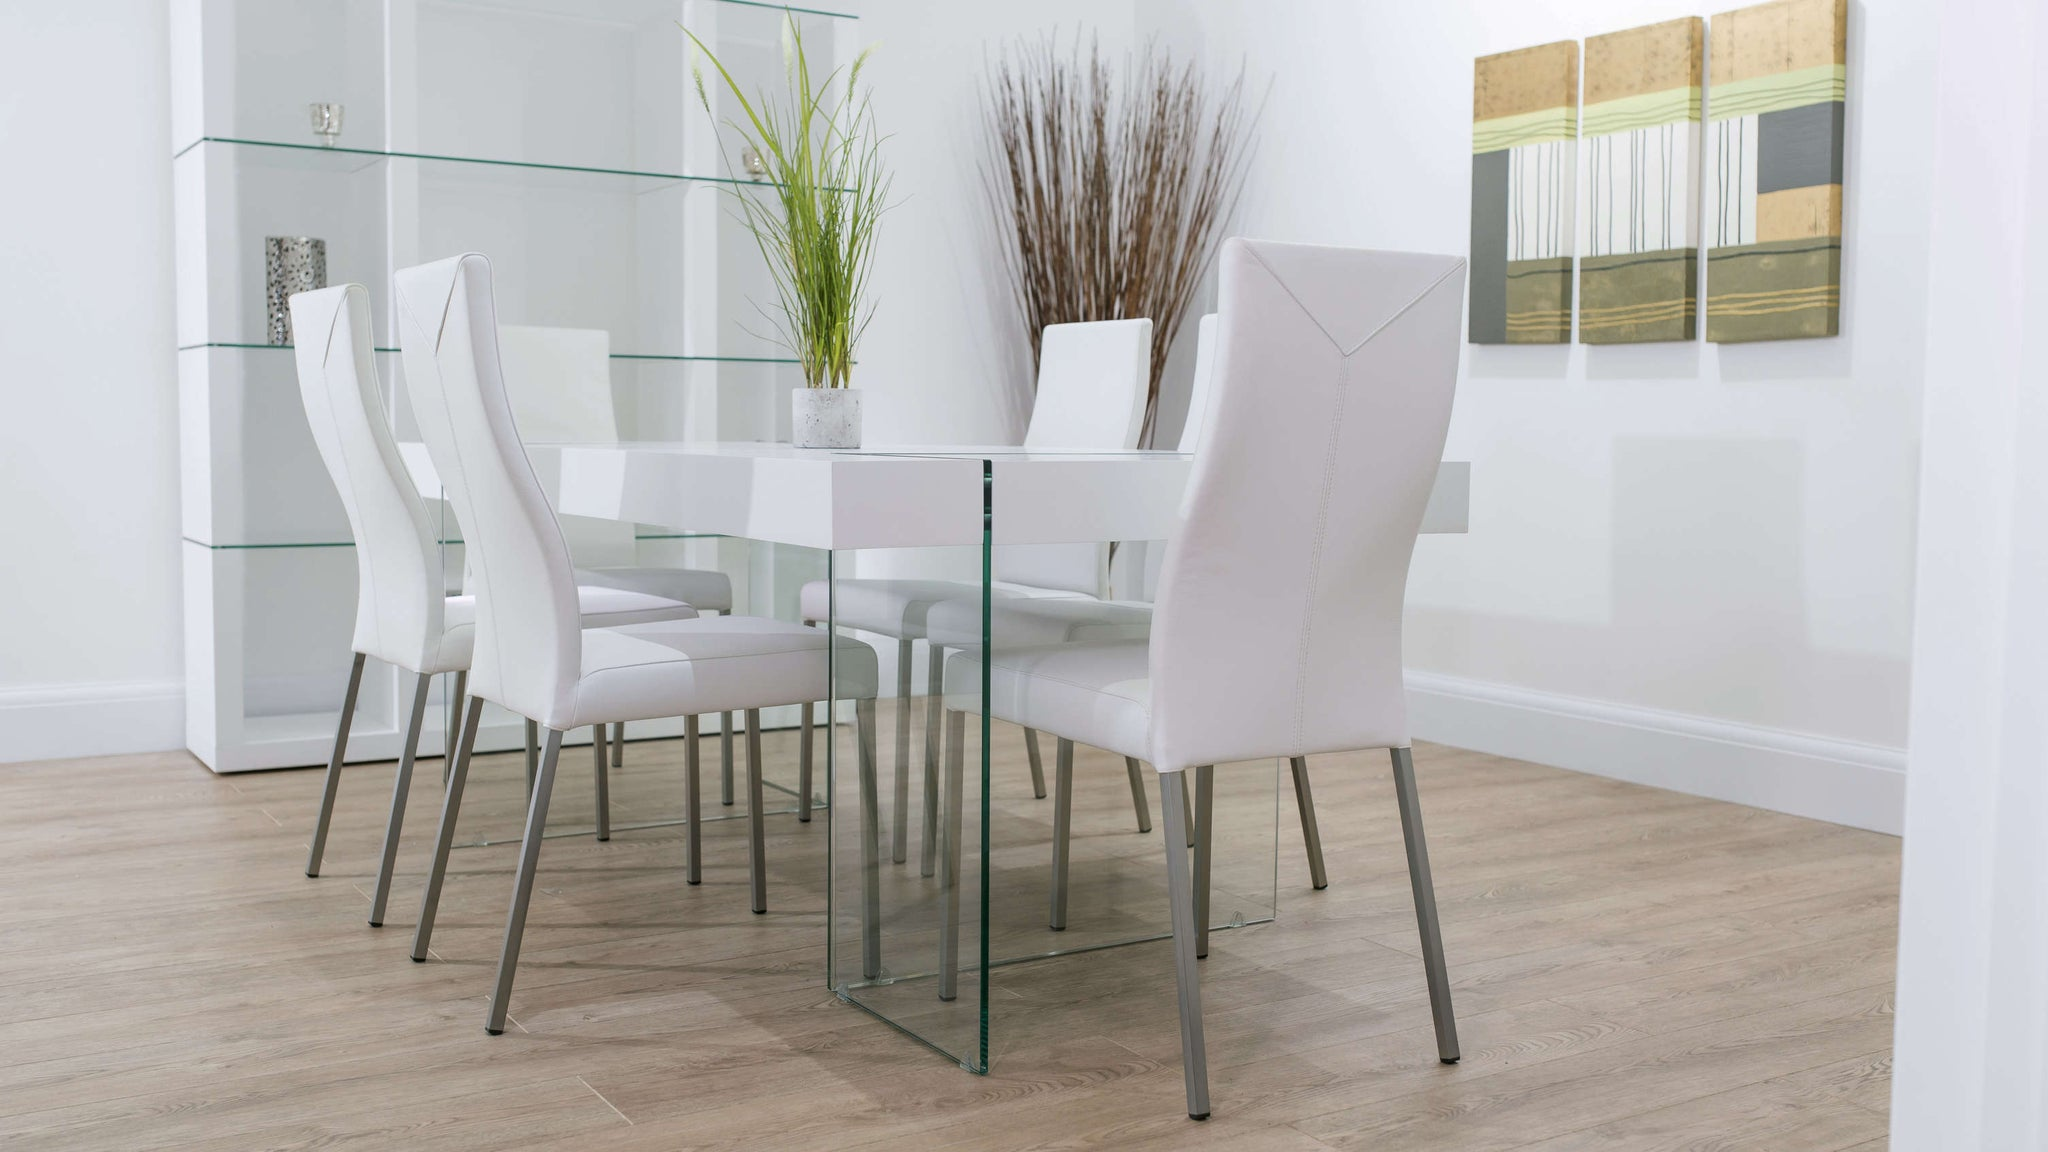 6 Seater White Dining Table and Real Leather Dining Chairs